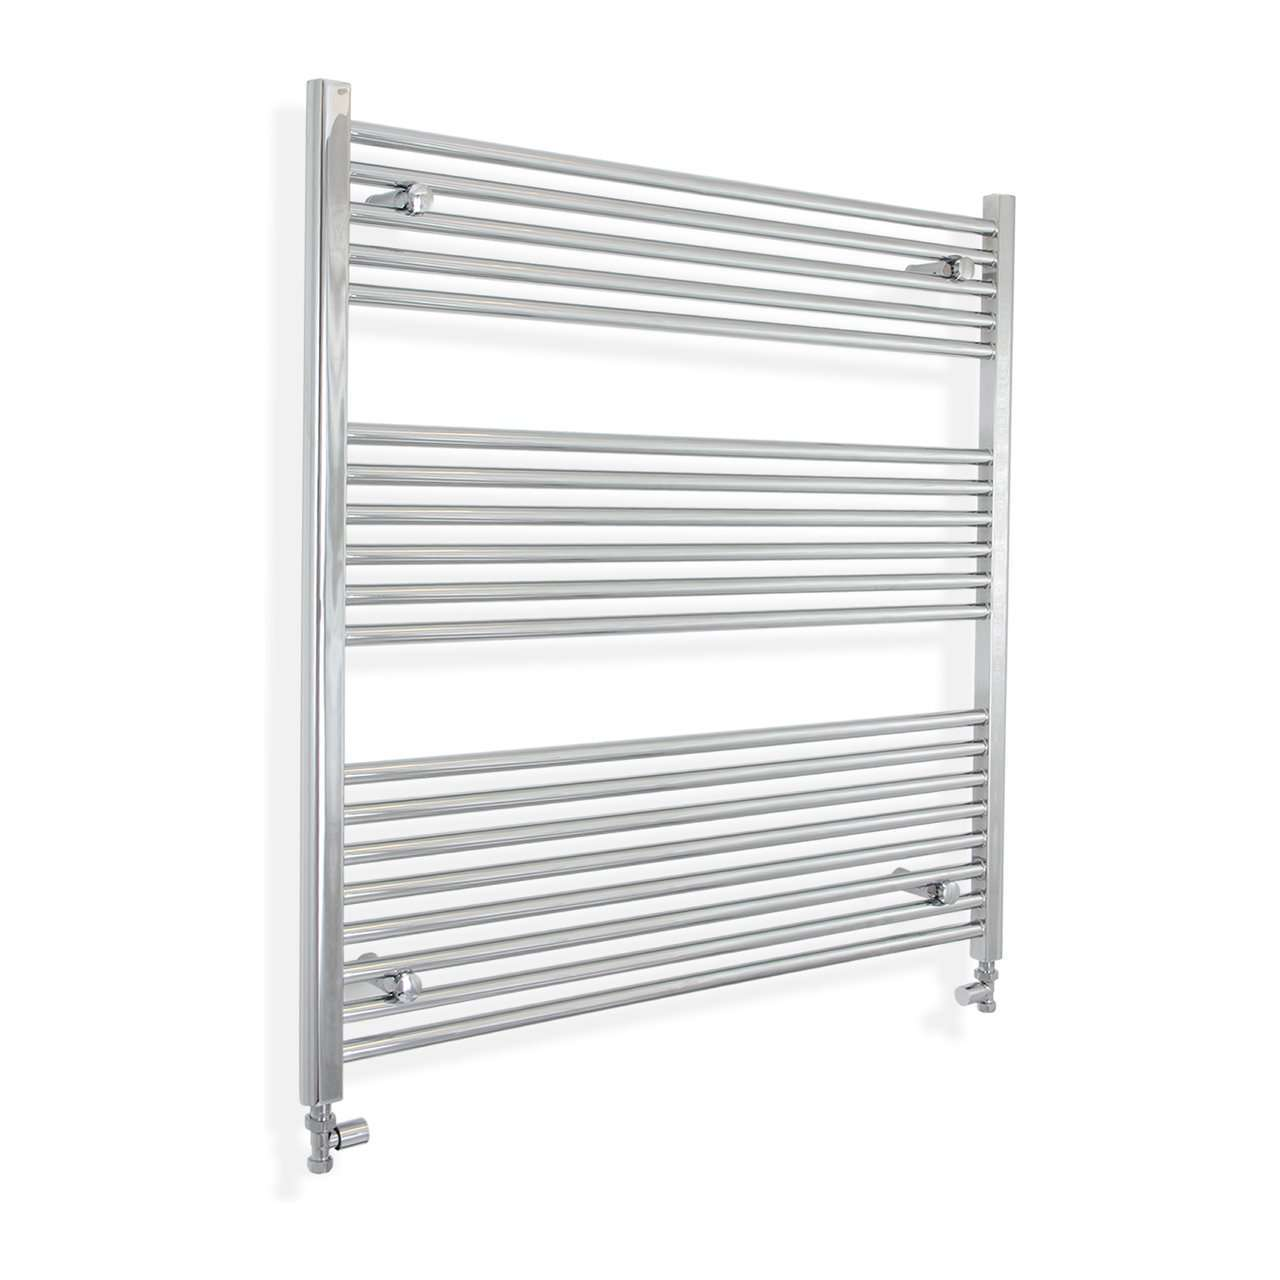 1200mm Wide 900mm High Flat Chrome Heated Towel Rail Radiator HTR,With Straight Valve